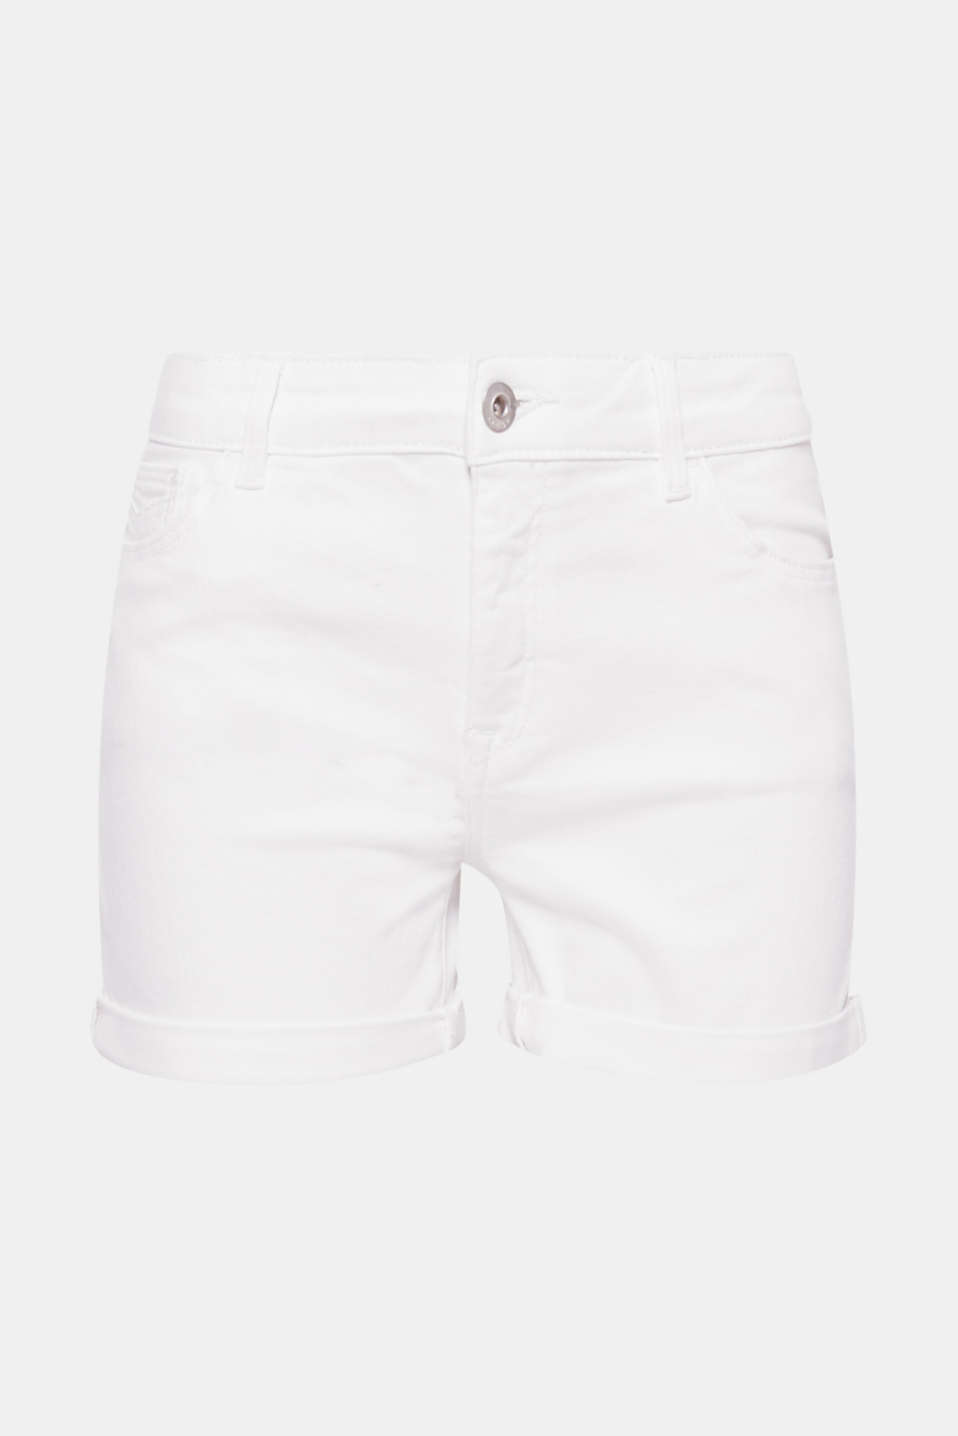 These pure white denim shorts made of comfortable stretch cotton are a must-have for your summer wardrobe!